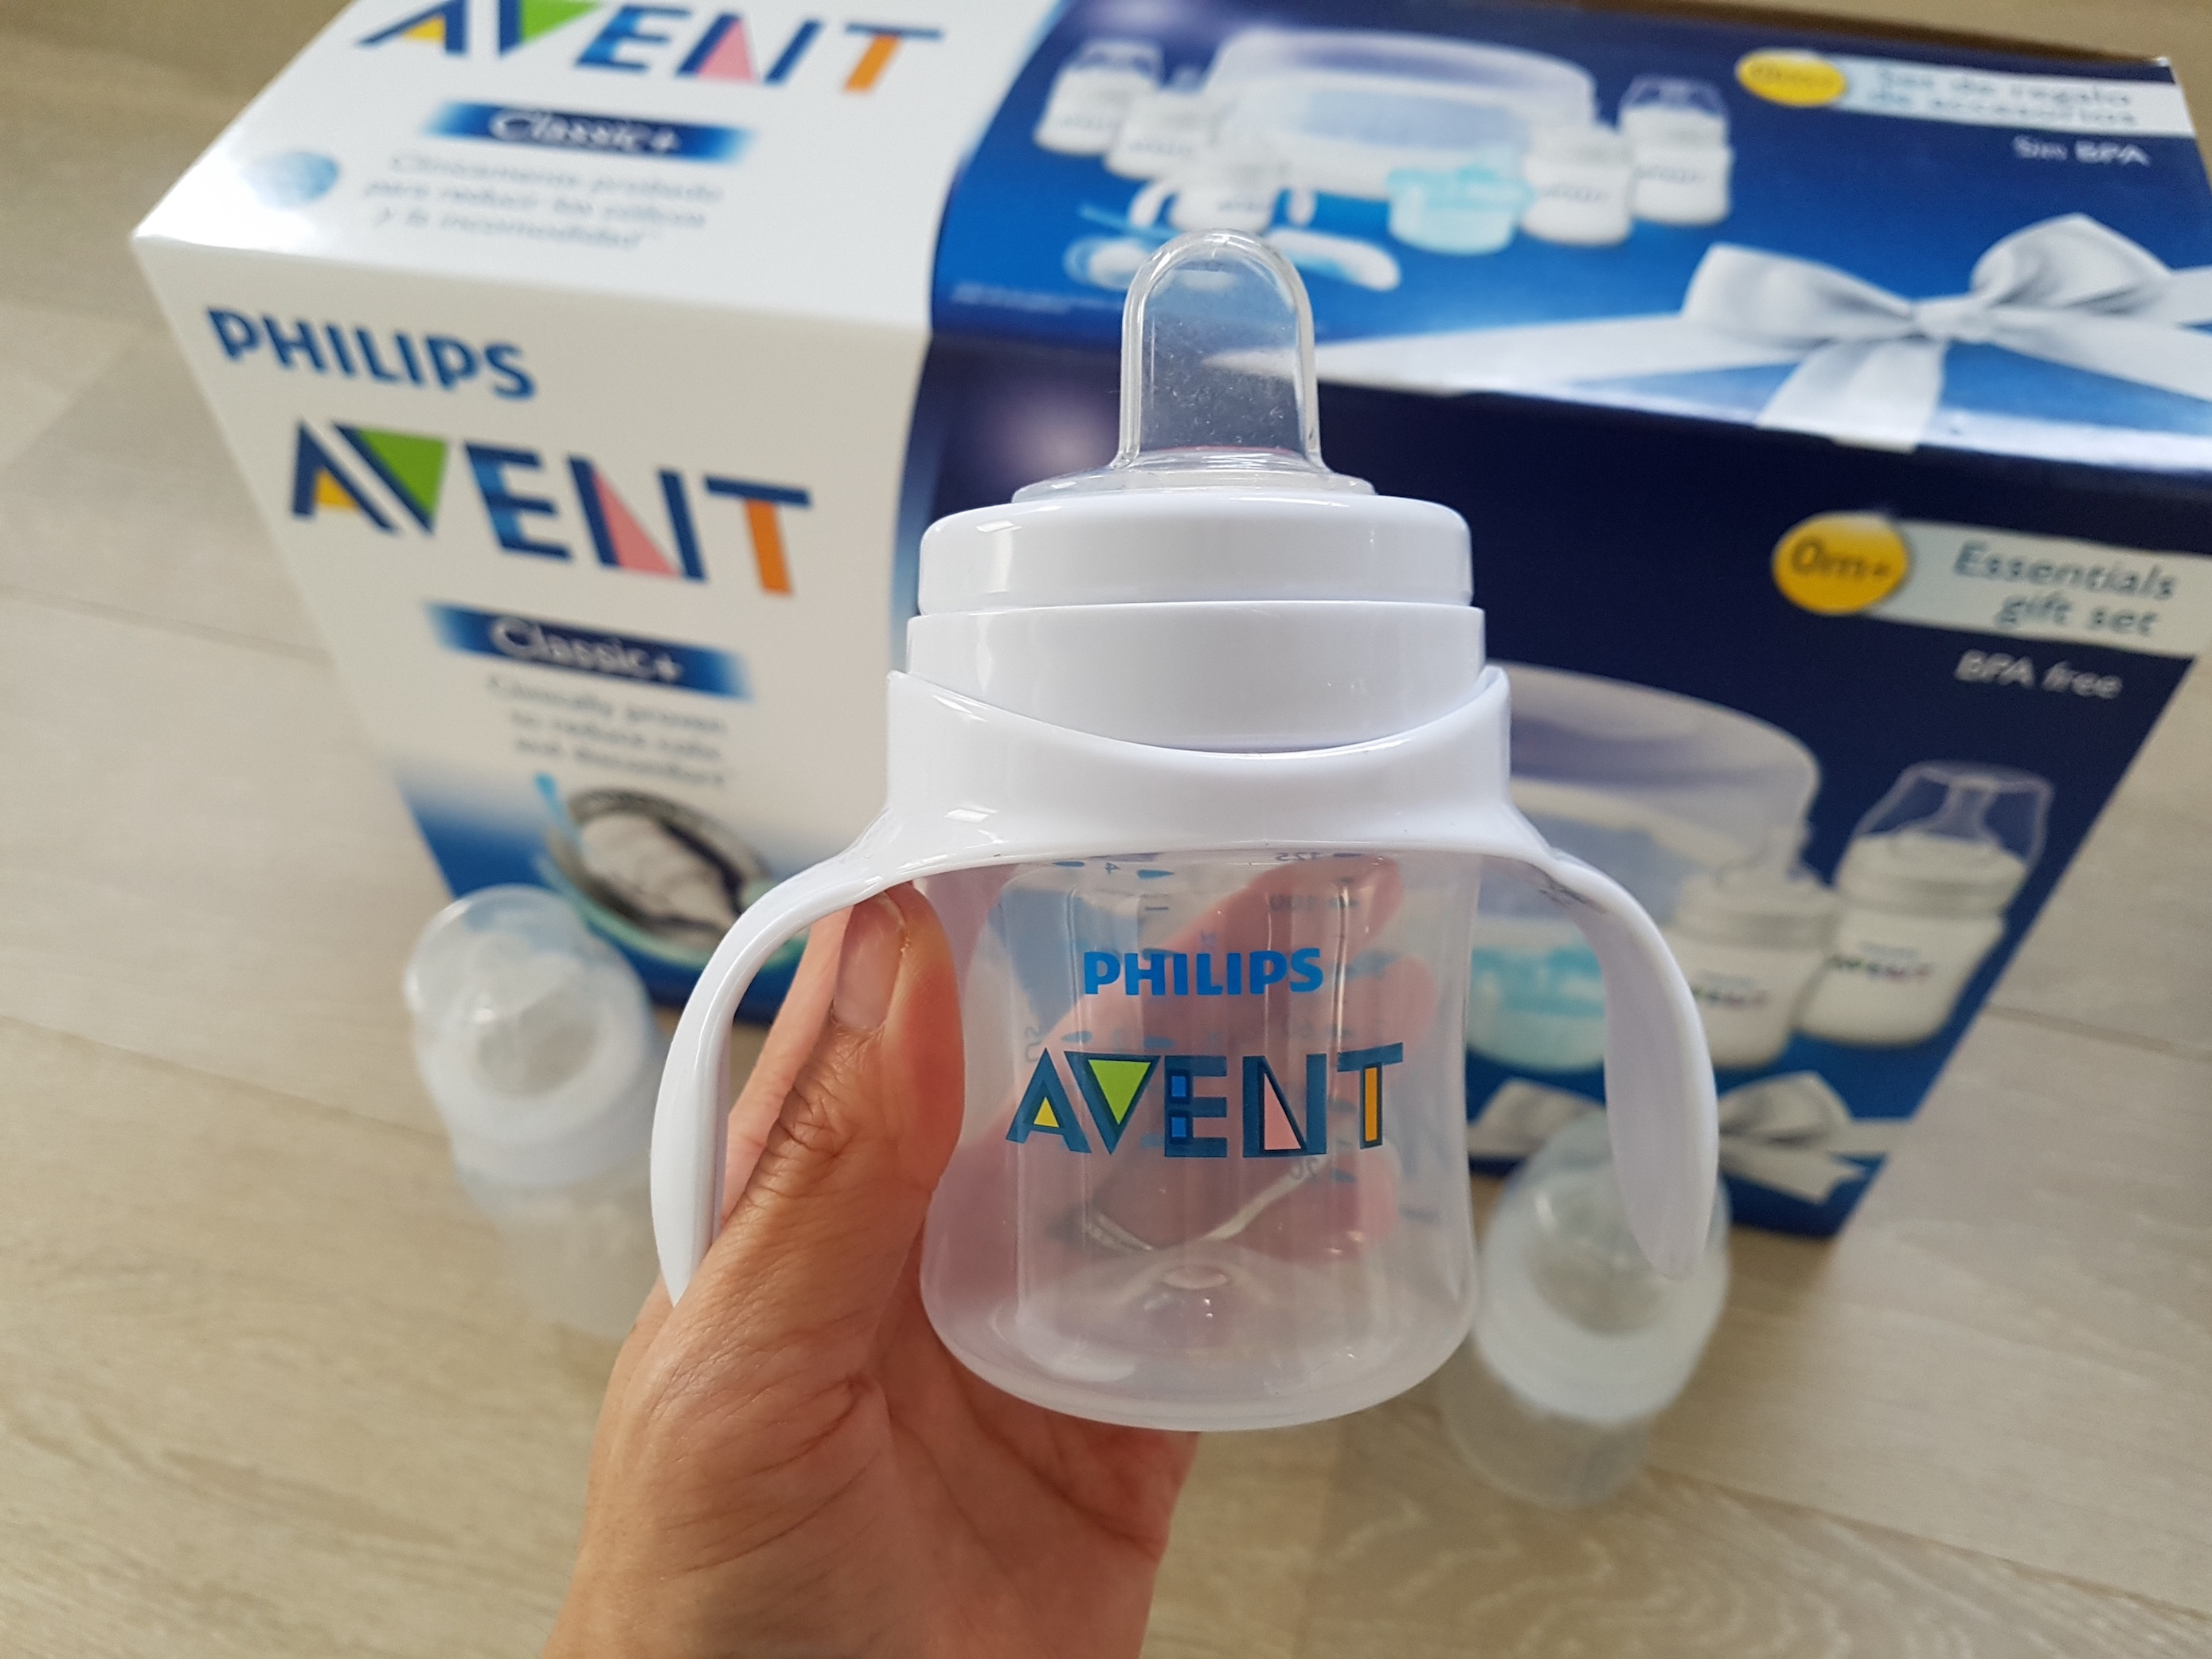 Philips Avent Baby Bottle Gift Sets Best Buy Blog